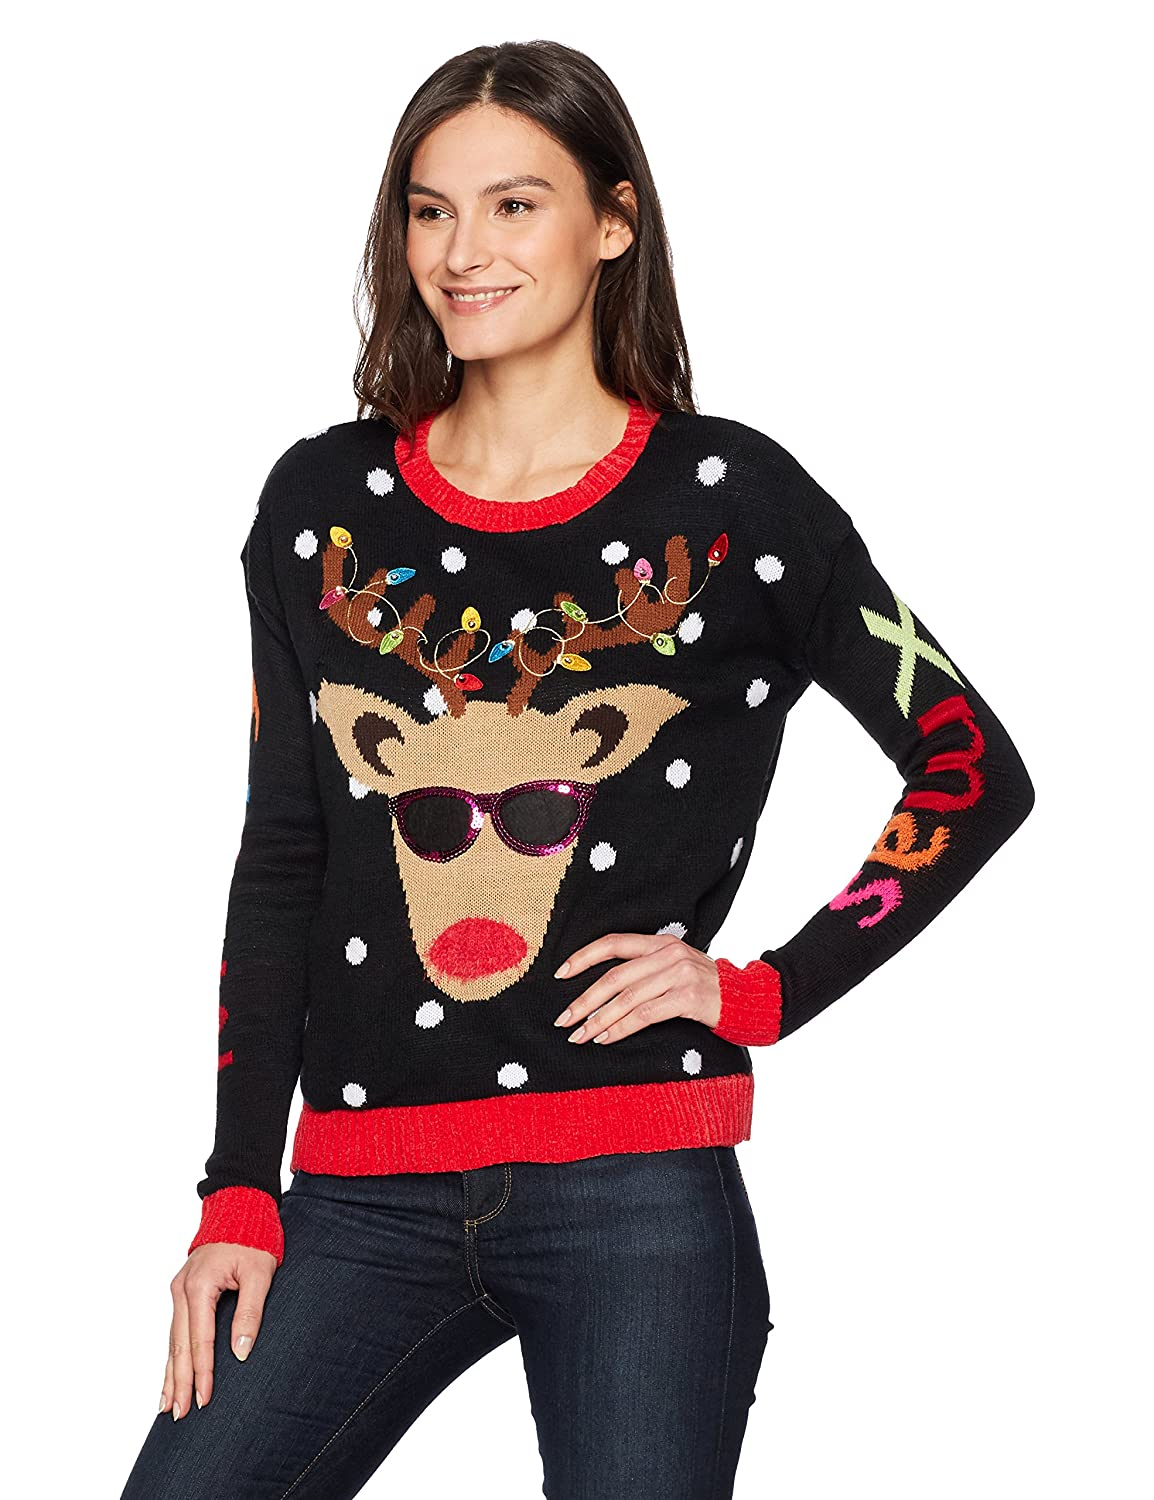 Blizzard Bay Women's Light Up Reindeer L/s Crew Neck Pullover Blizzard Bay Juniors J65681